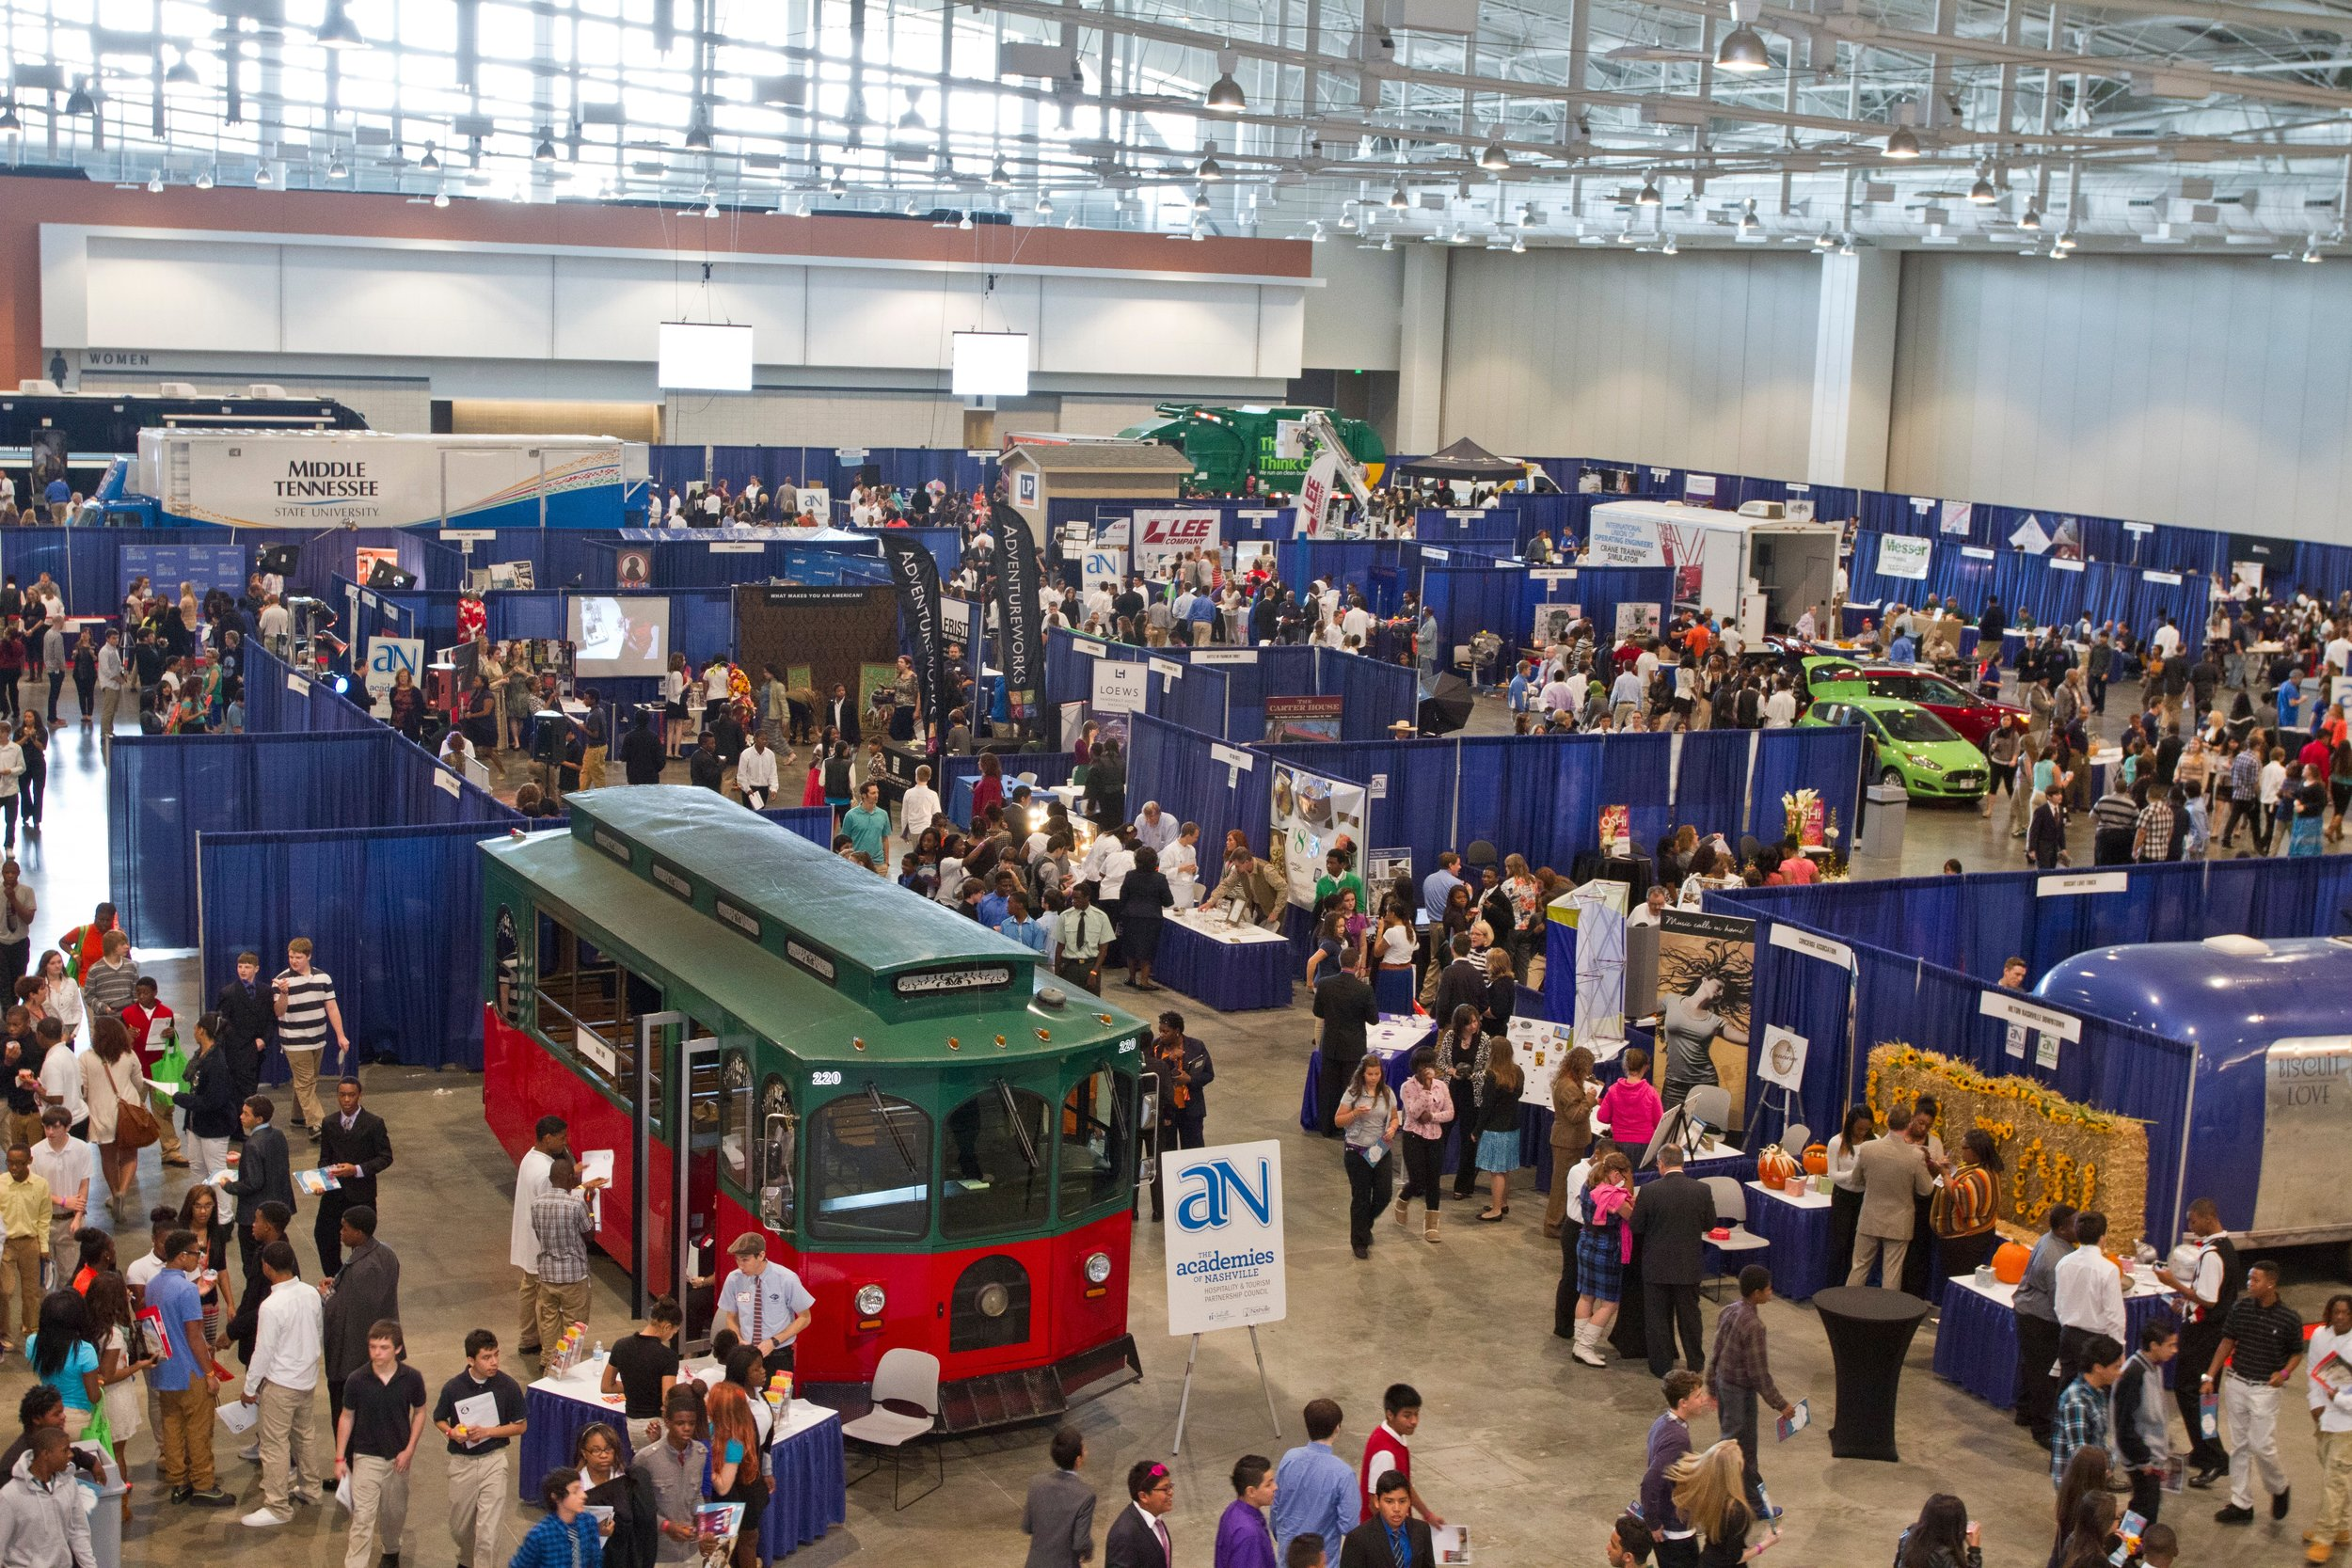 A bird's eye view of the Music City Center shows the vast number of careers and interactive exhibits available for students at the Career Exploration Fair.